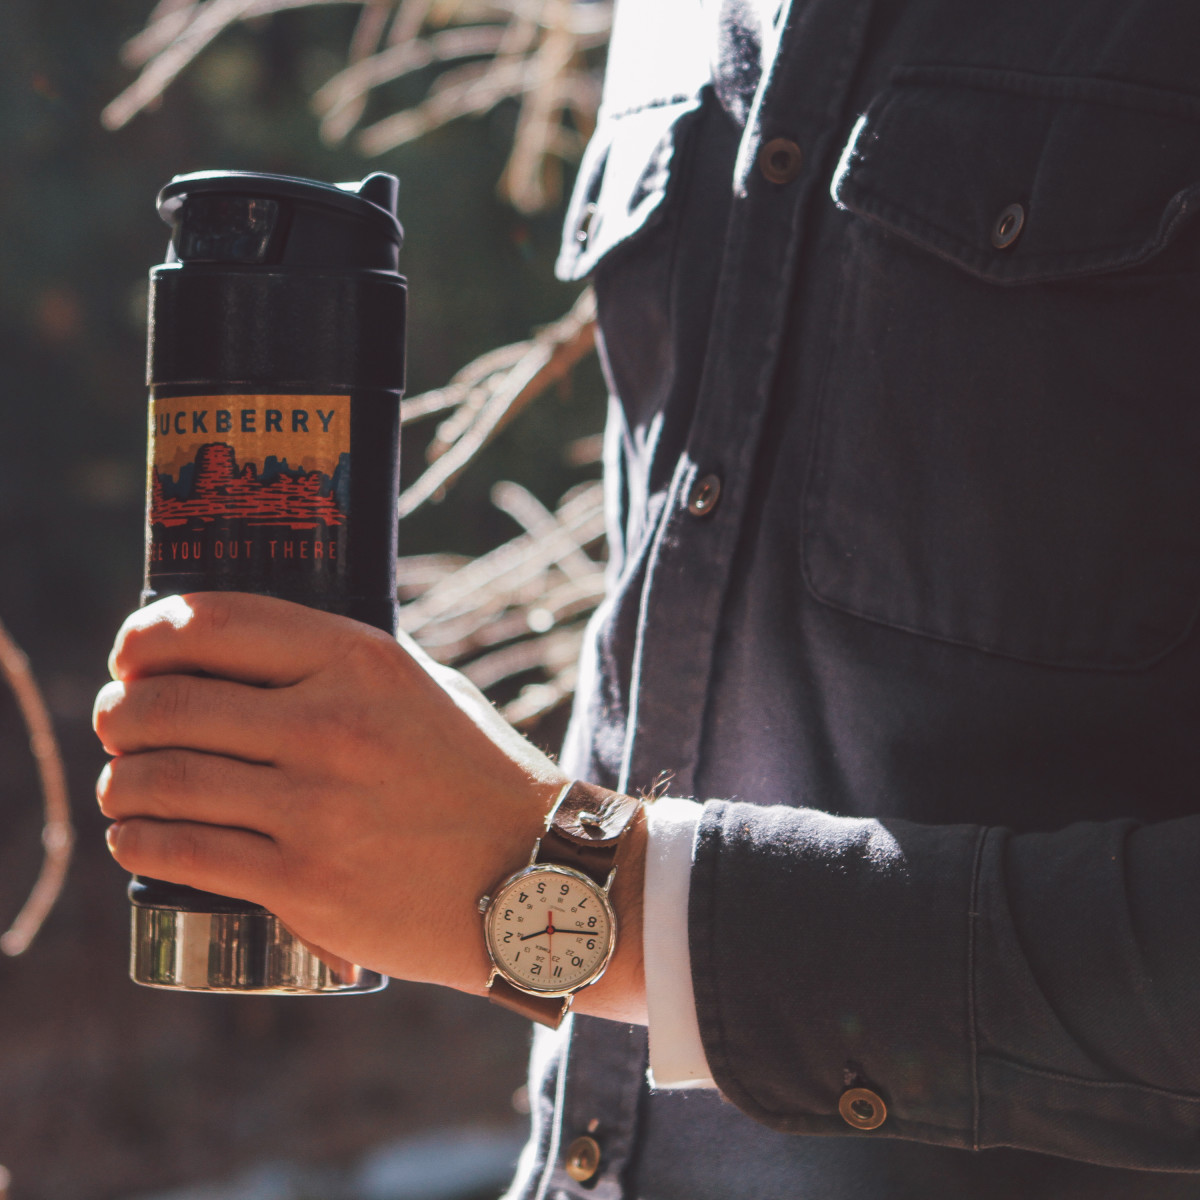 Shown: The Timex Weekender